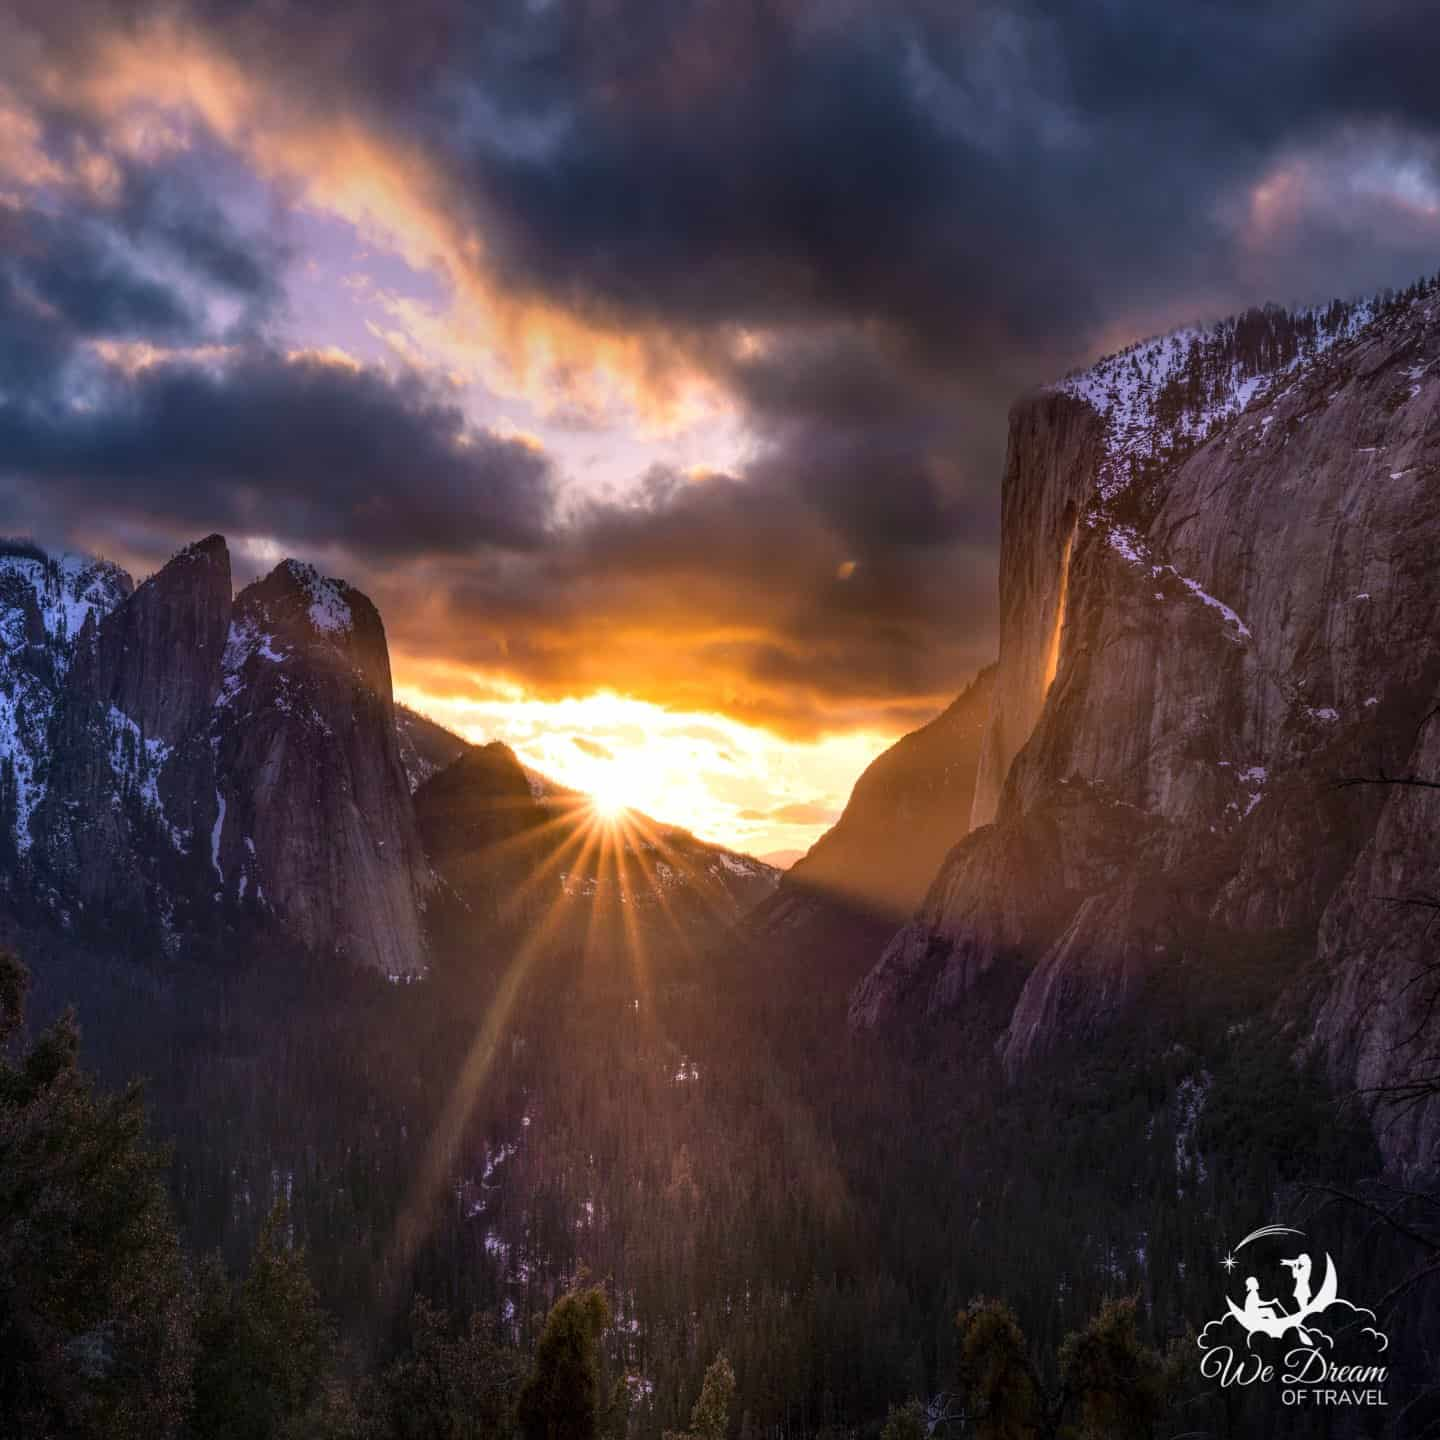 Watching the Yosemite Firefall at sunset from Four Mile Trail.